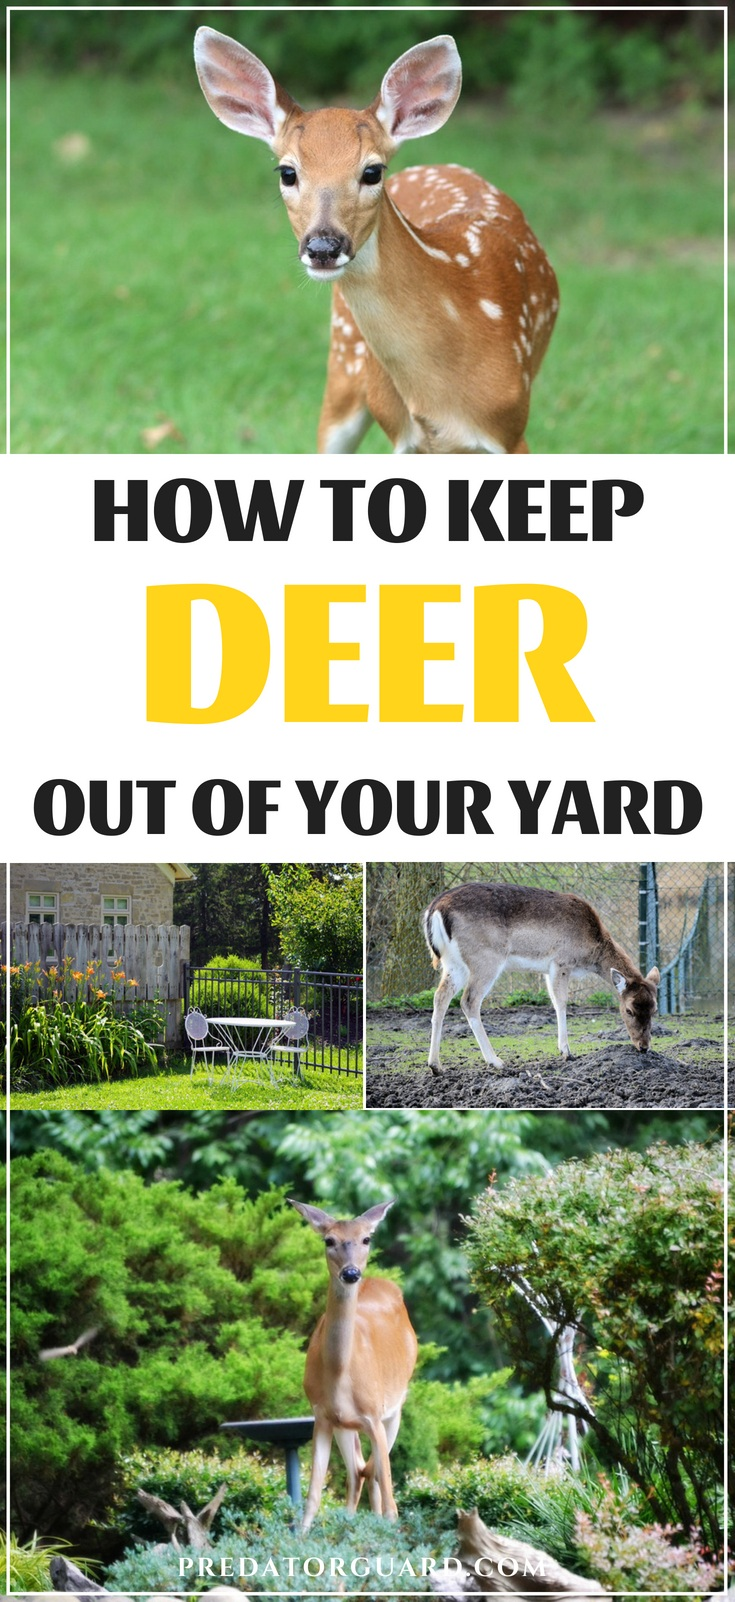 How-To-Keep-Deer-Out-of-Your-Yard-Predator-Guard